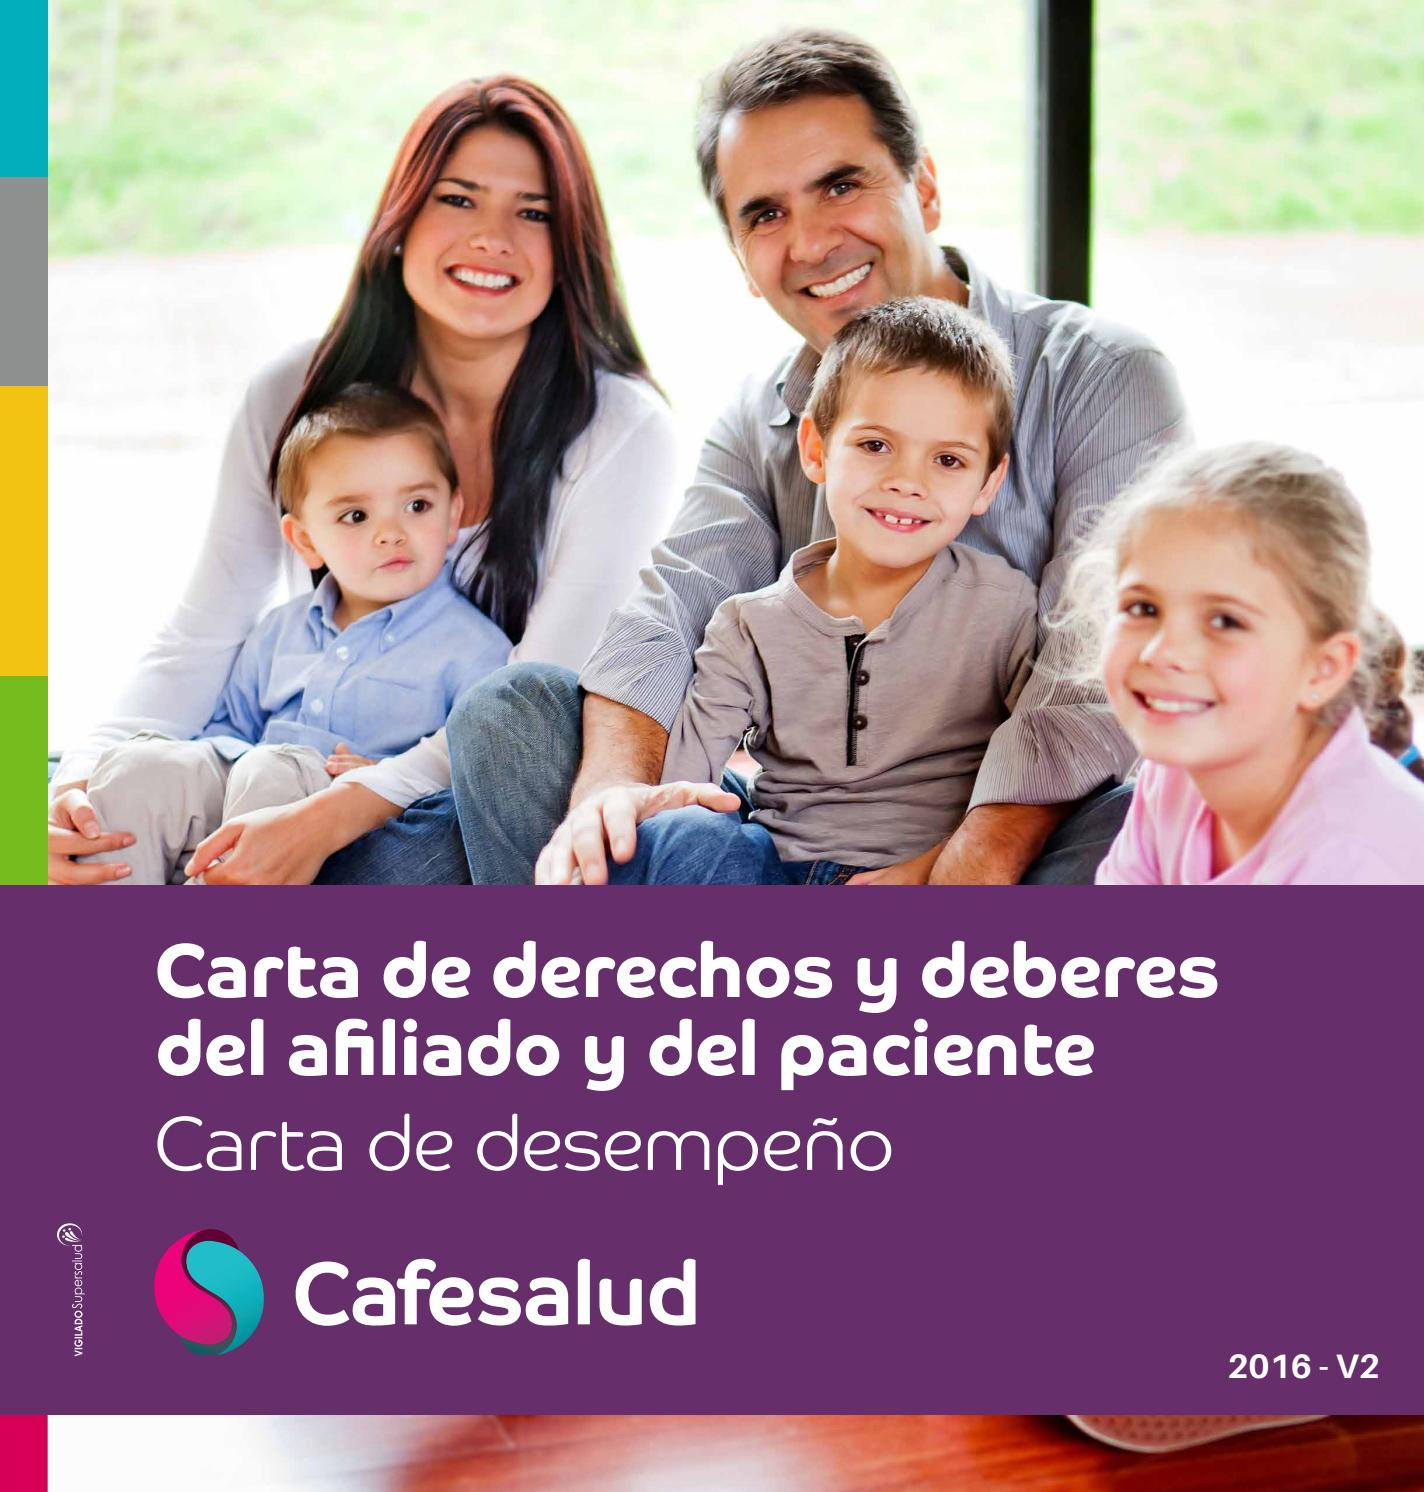 Cafesalud Eps Citas-596268